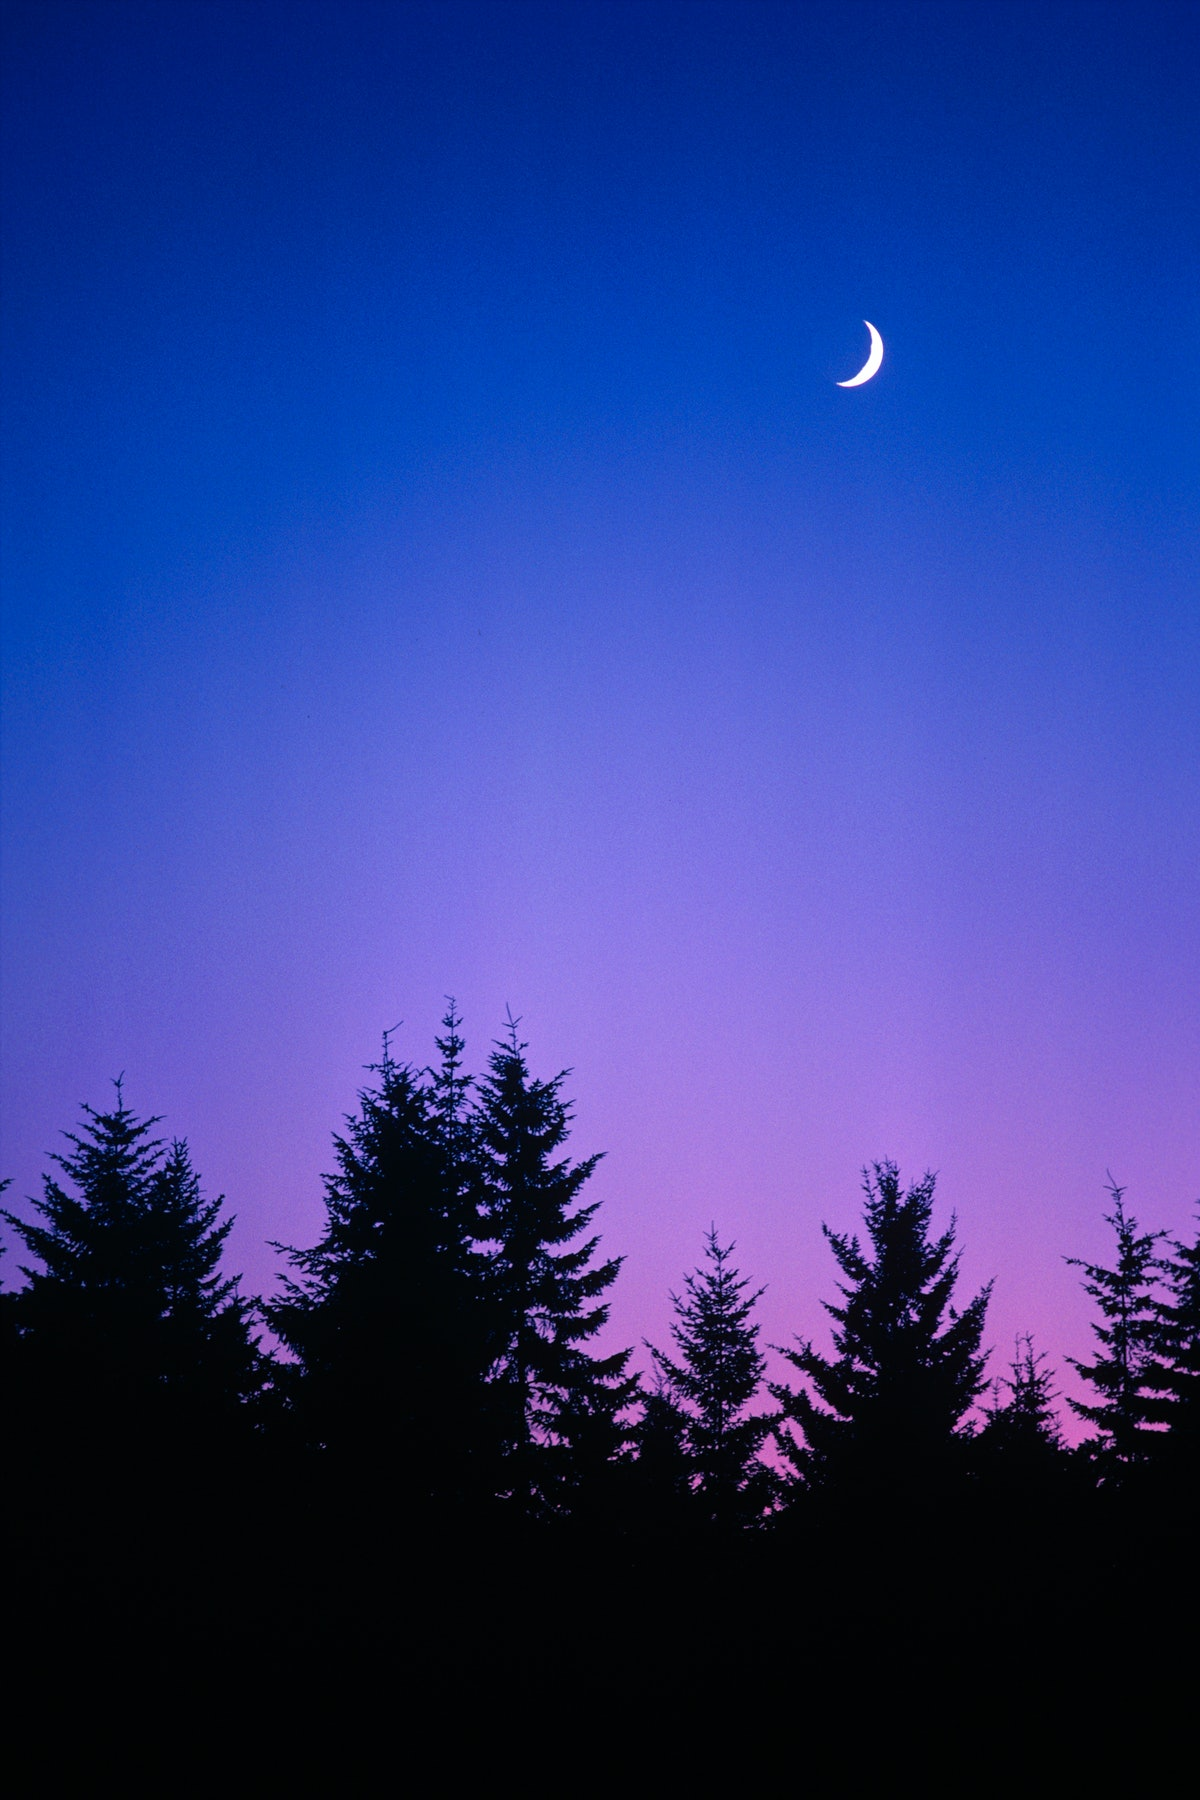 Waxing crescent moon, which is one of the eight moon phases.